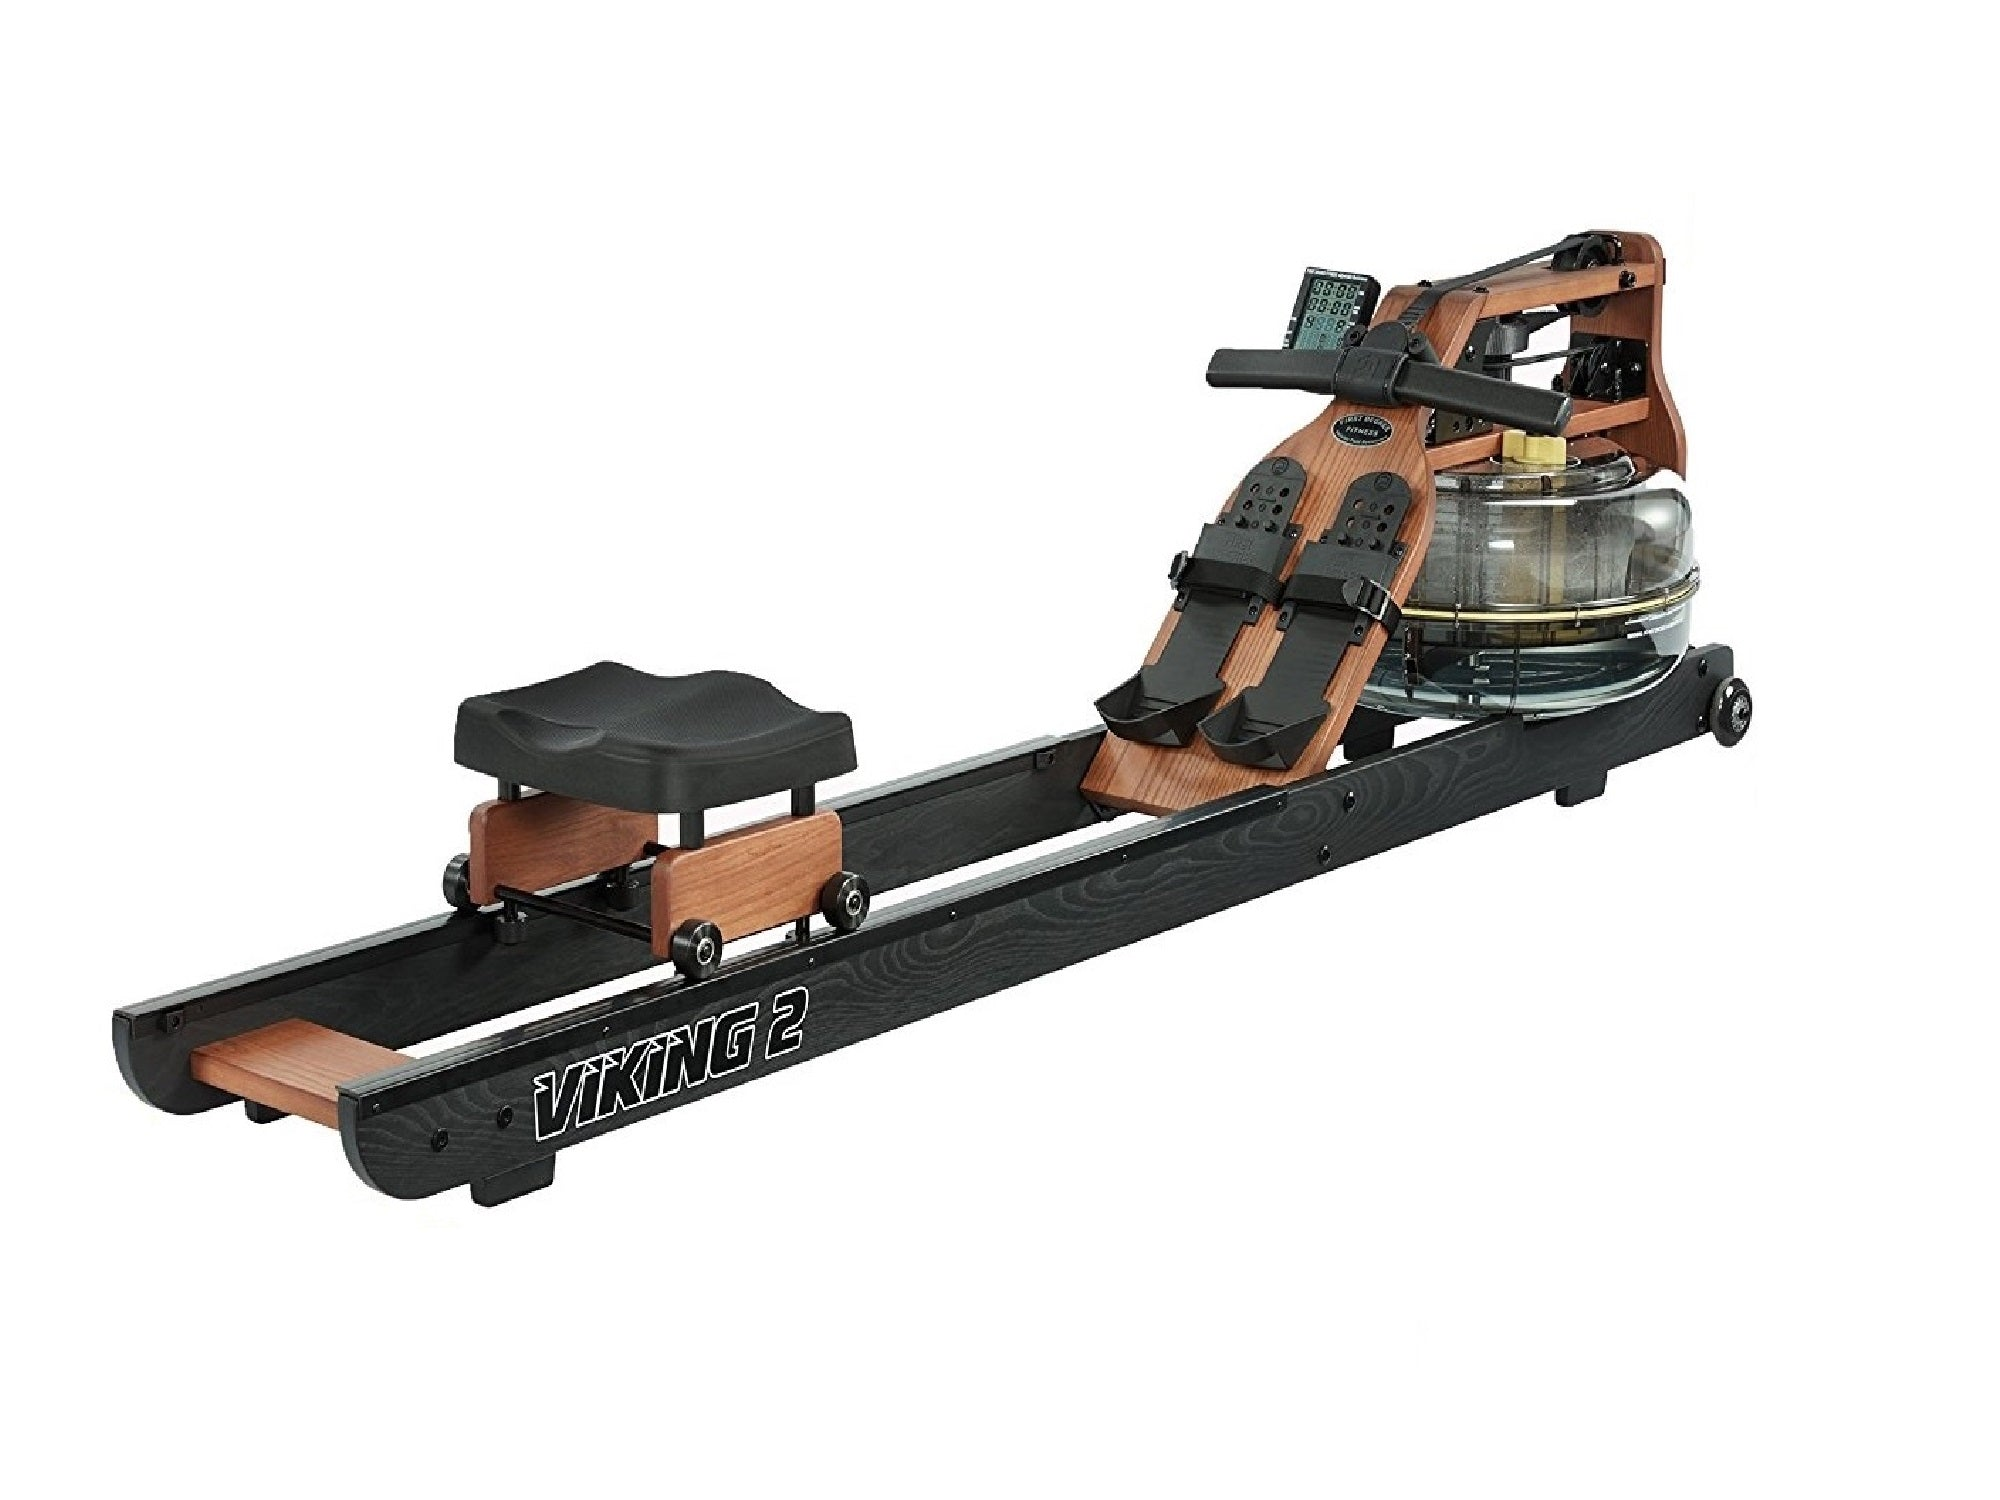 Viking 2 AR Res Rower